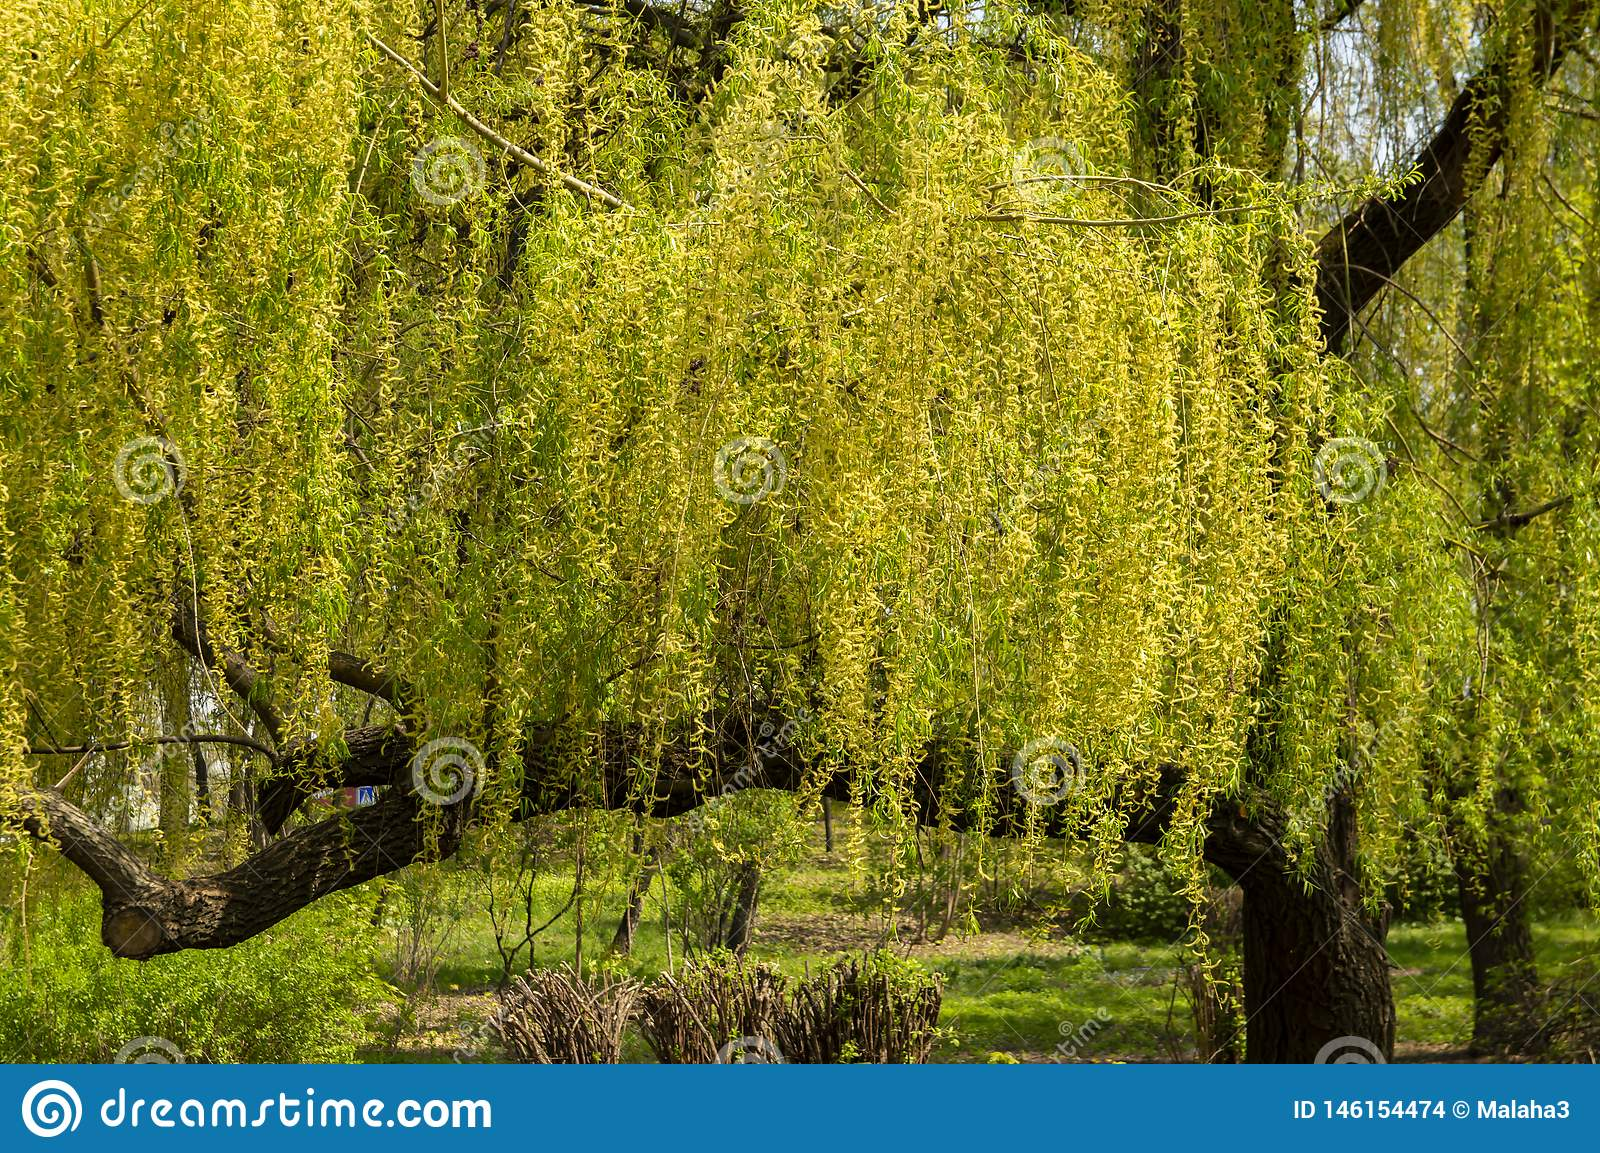 Willow tree with young foliage